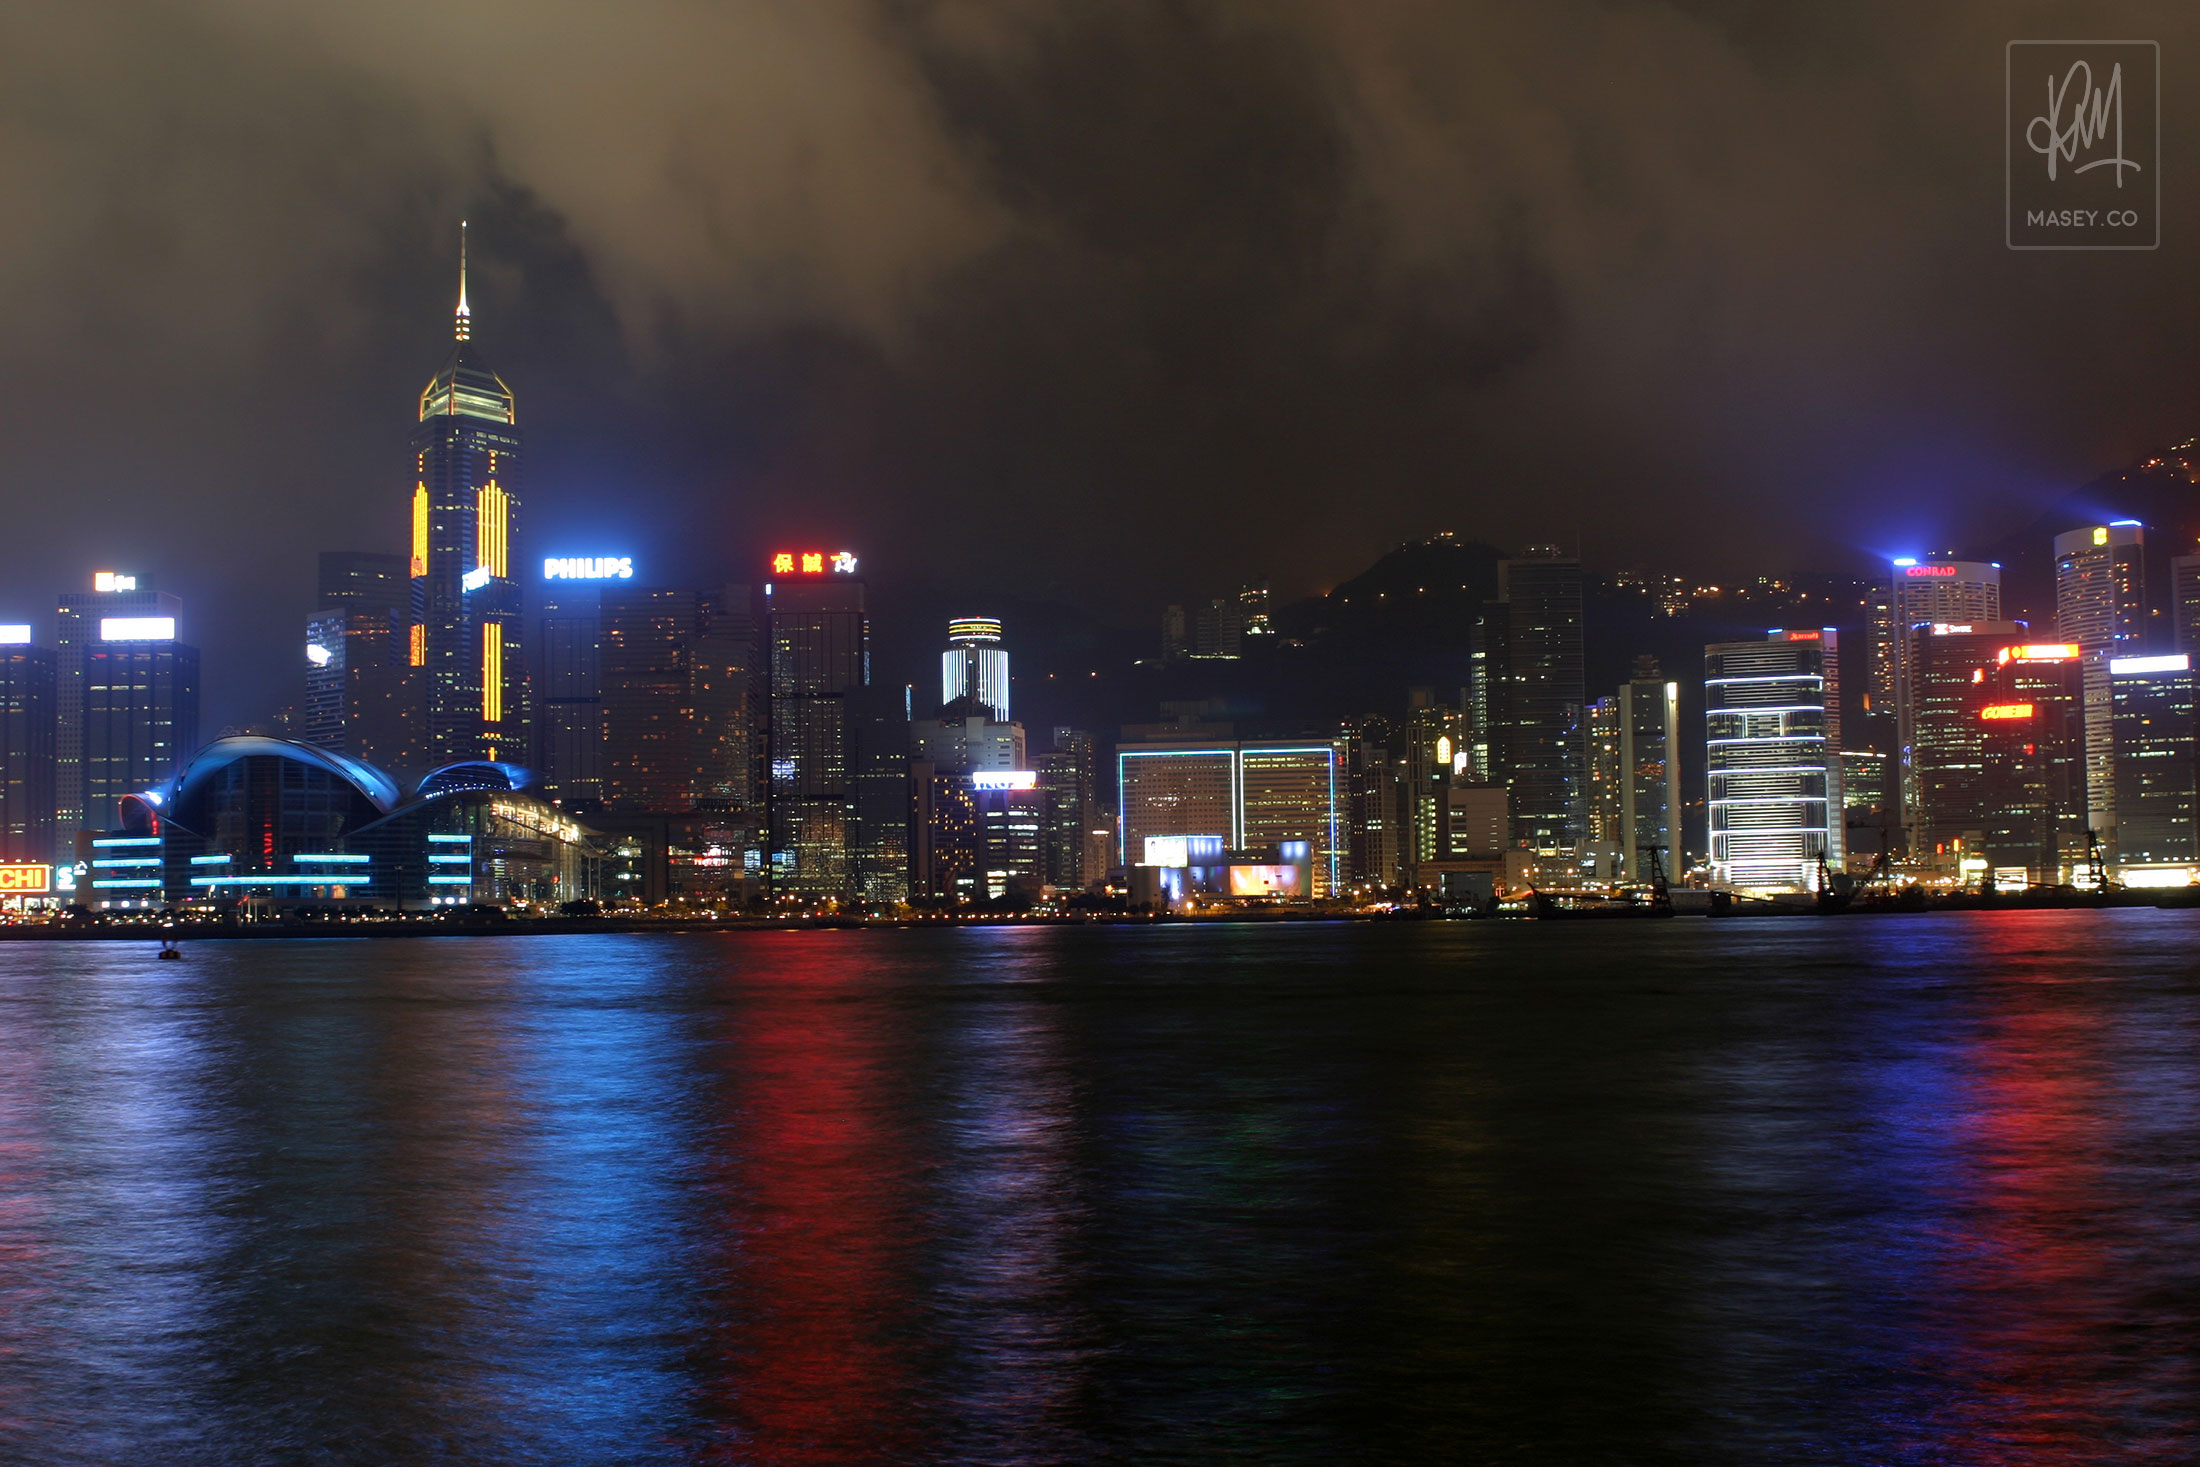 The famous Hong Kong city skyline from the harbour